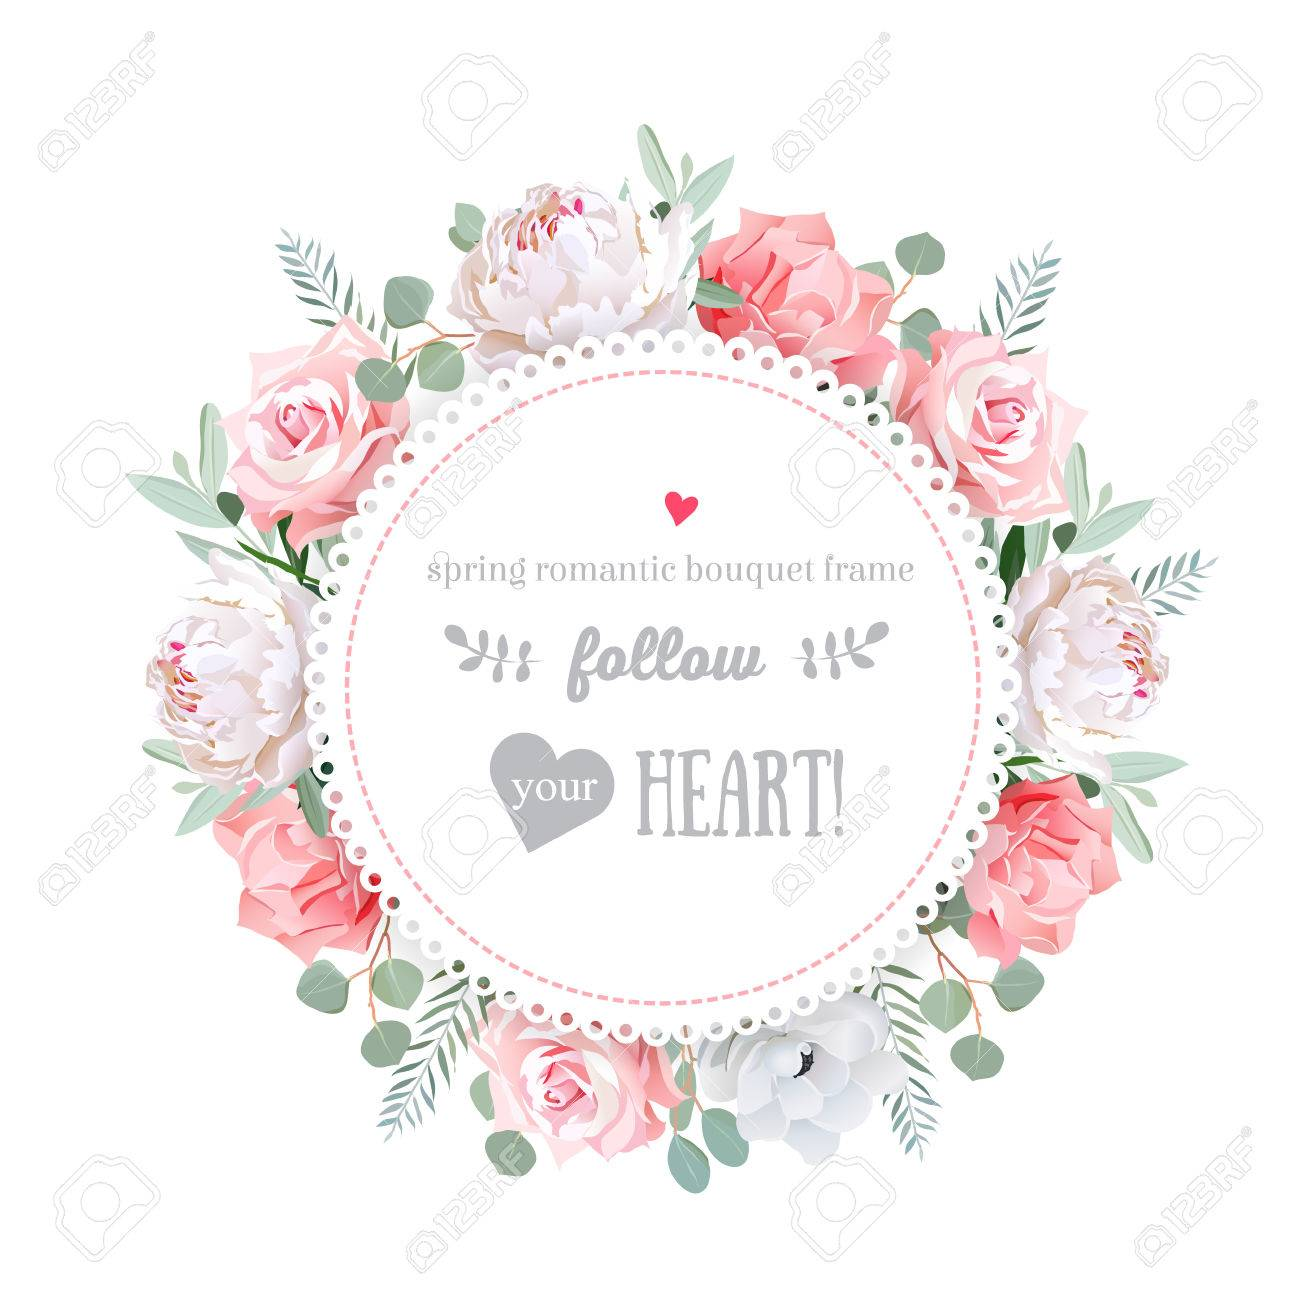 Delicate wedding floral design frame. Peony, rose, anemone, pink flowers. Colorful floral objects. All elements are isolated and editable. - 55728584